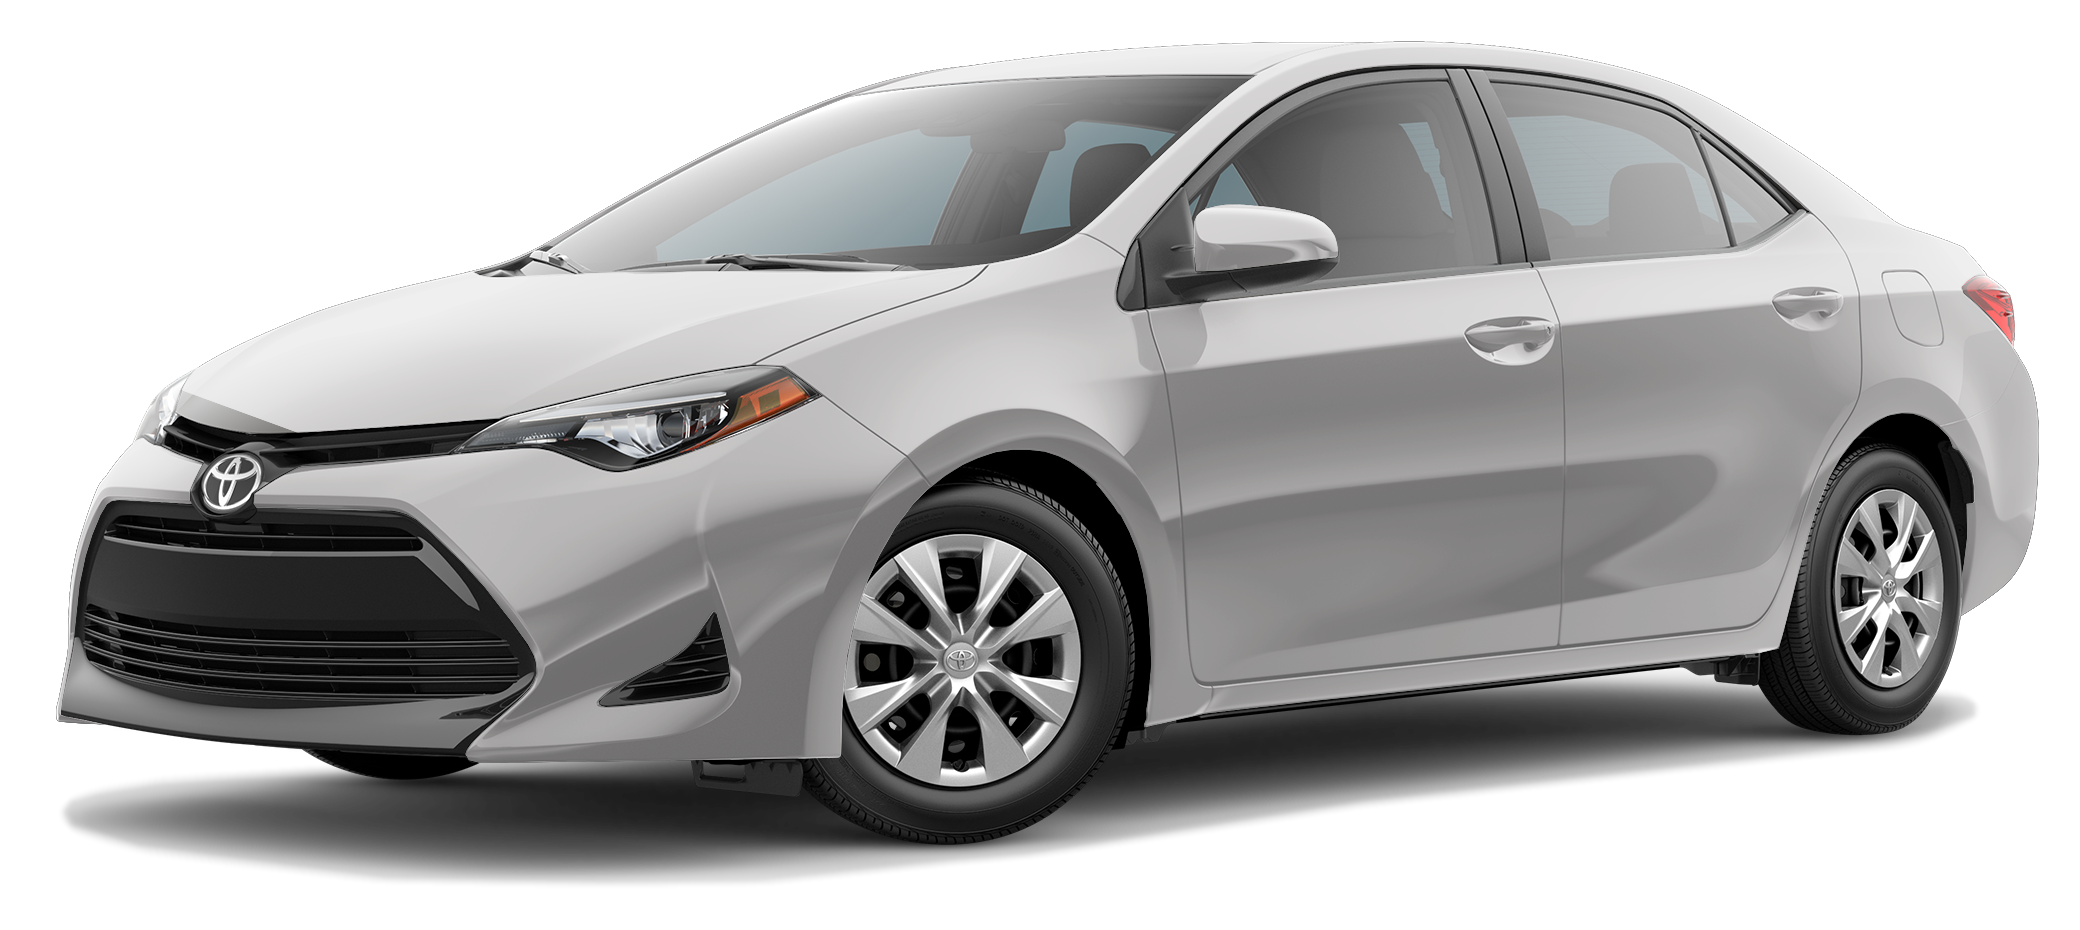 Review & Compare the 2019 Toyota Corolla at Larry H. Miller